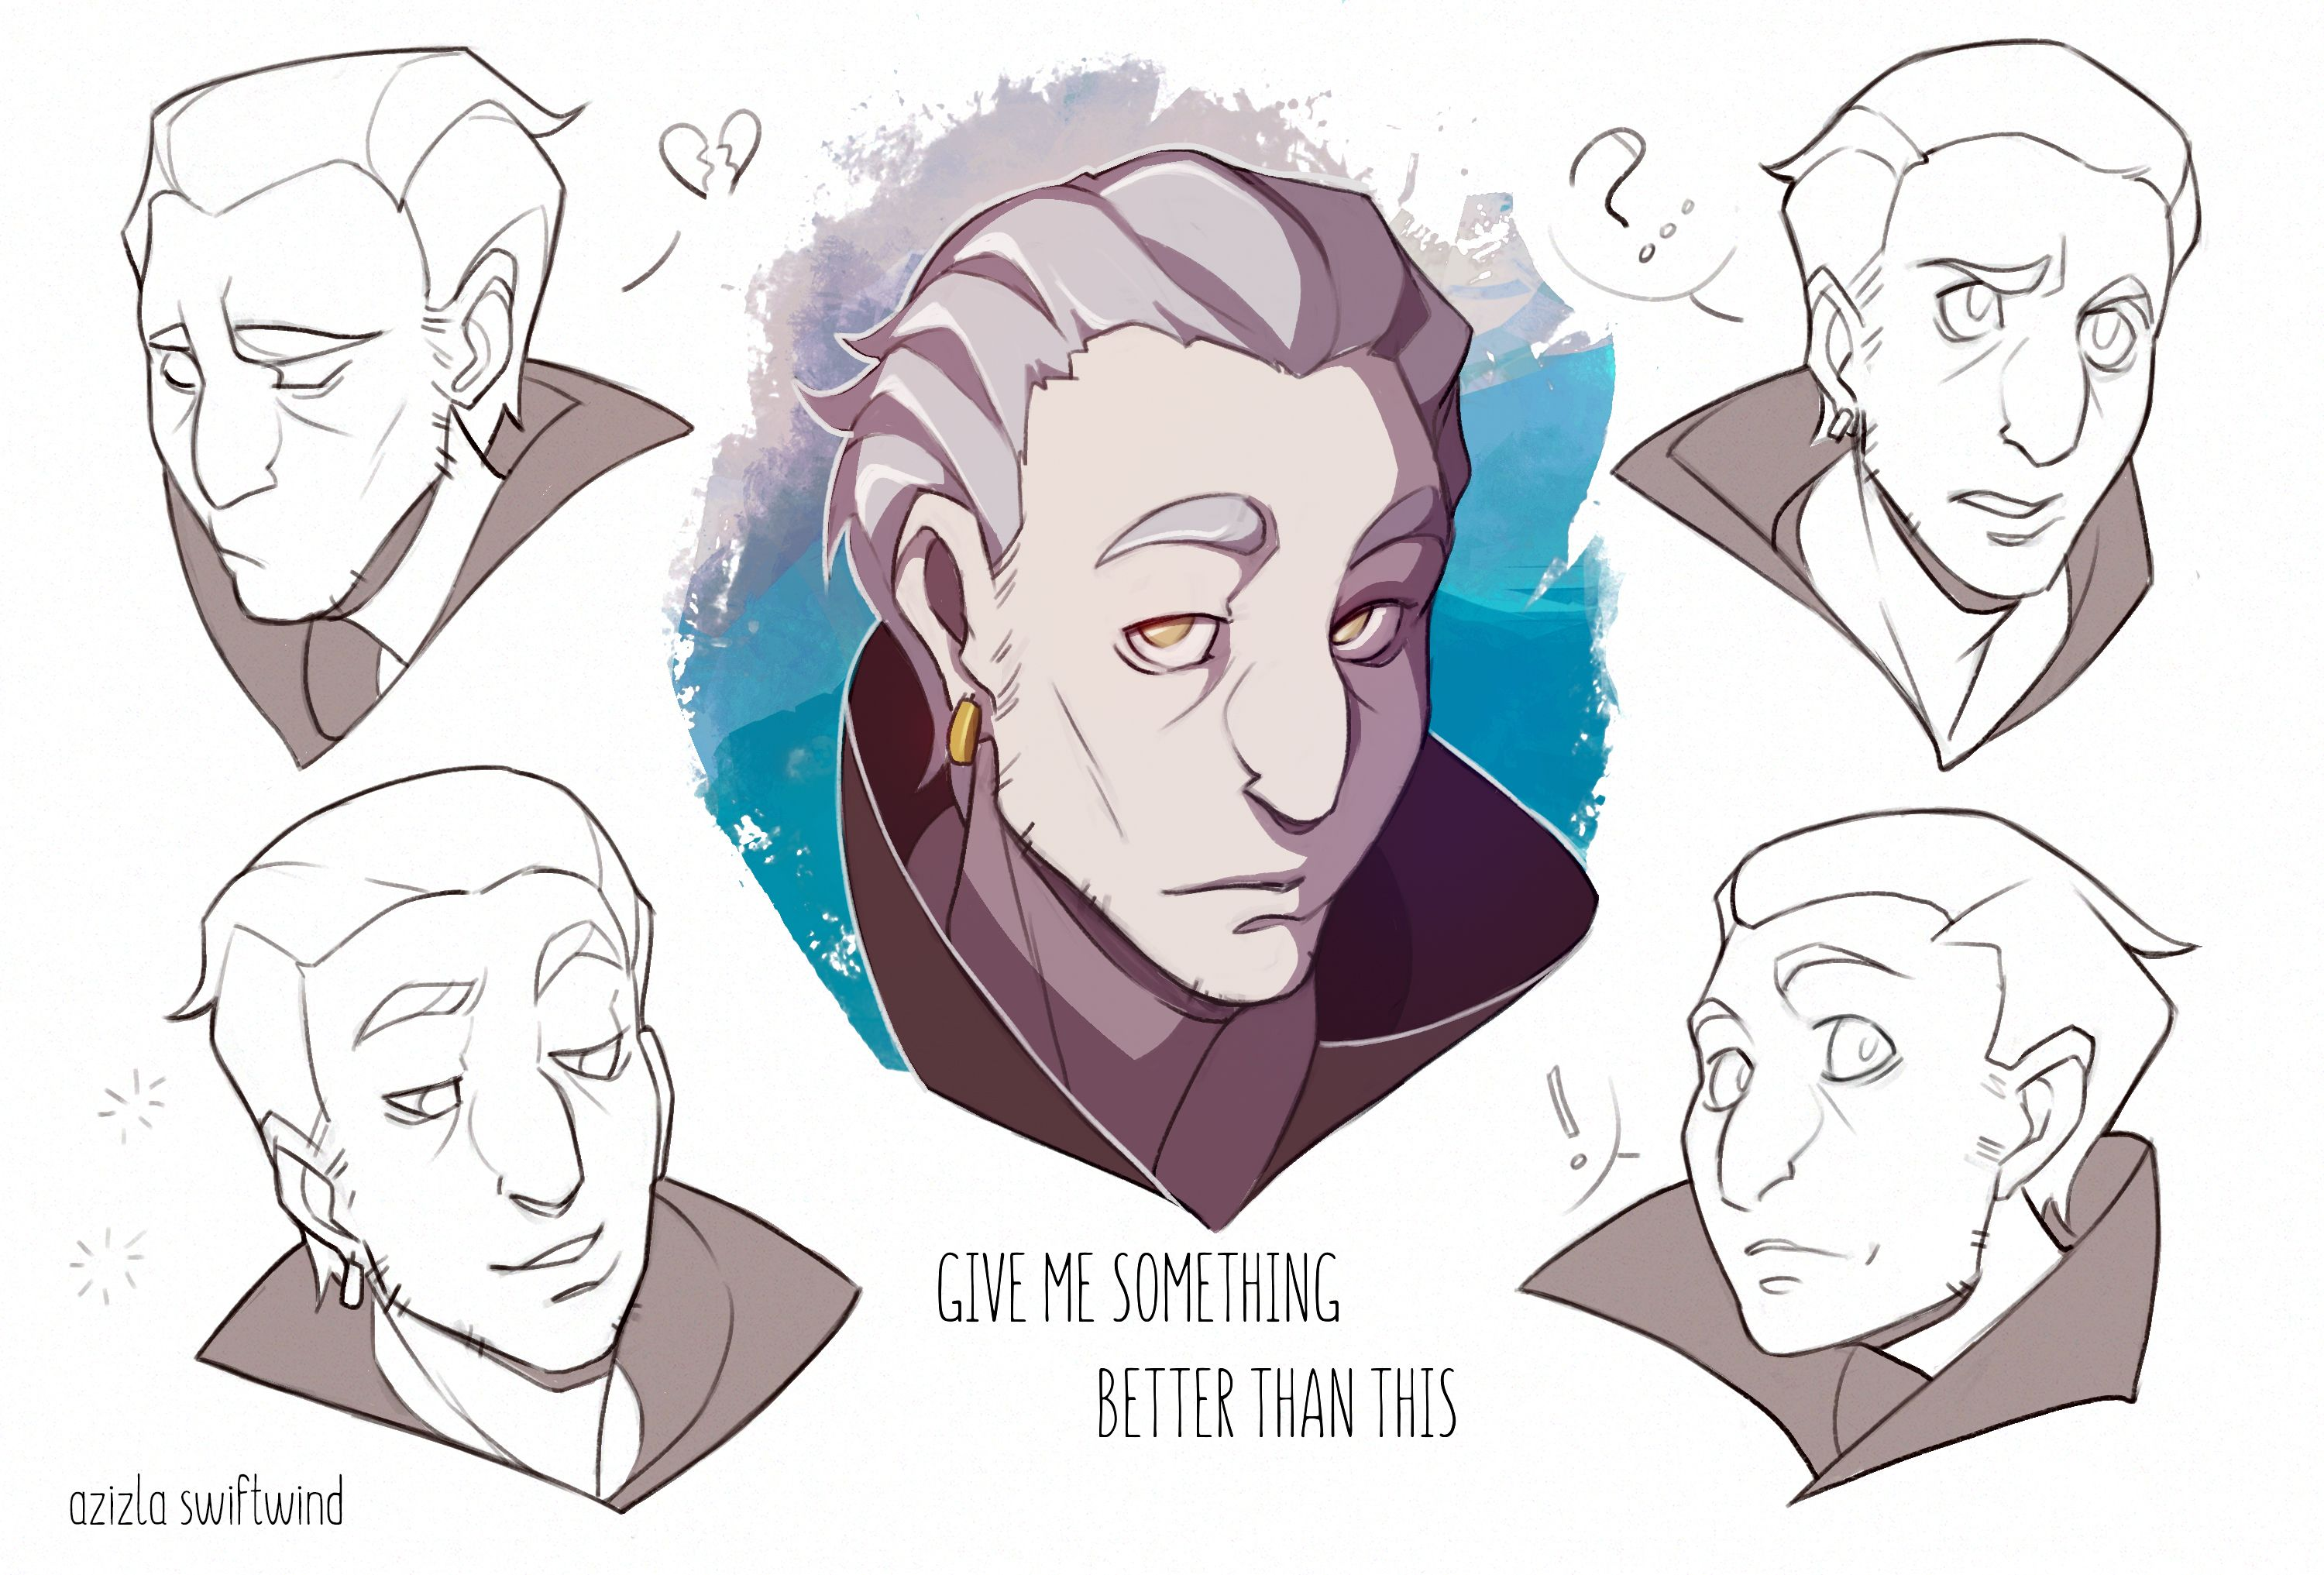 Modest OC character emotions face head sheet reference